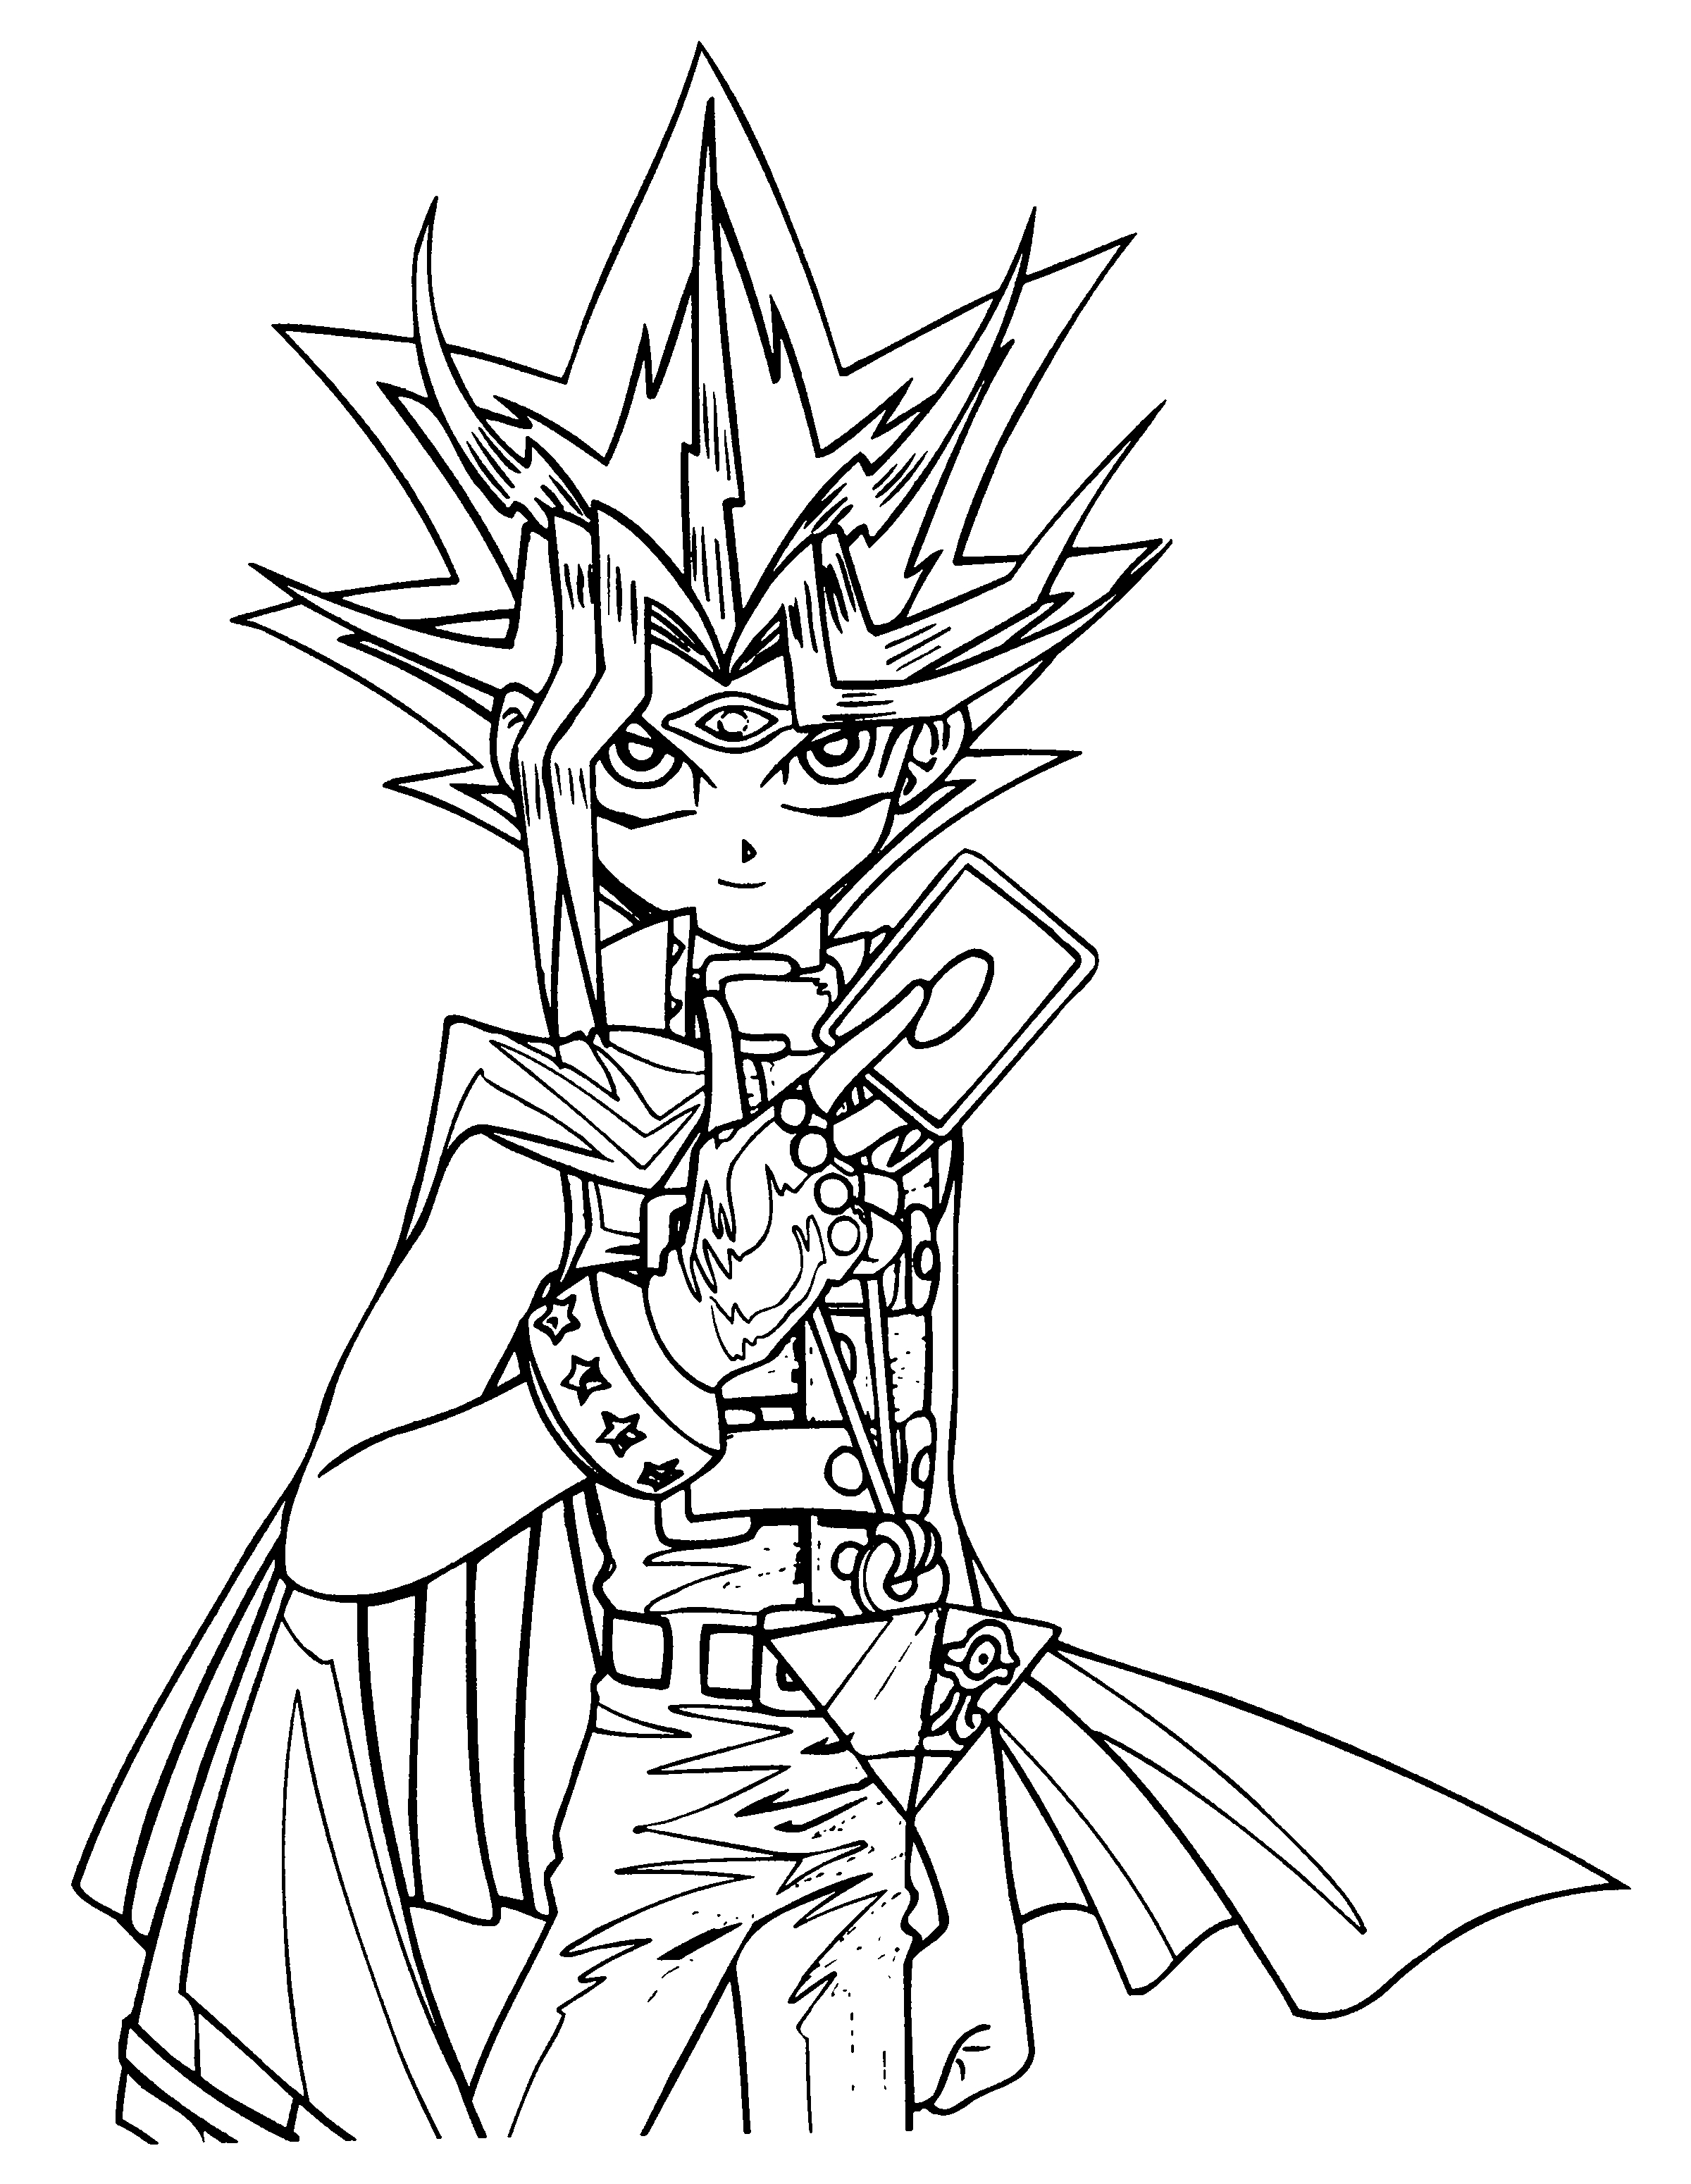 yugioh coloring pages - yu gi oh